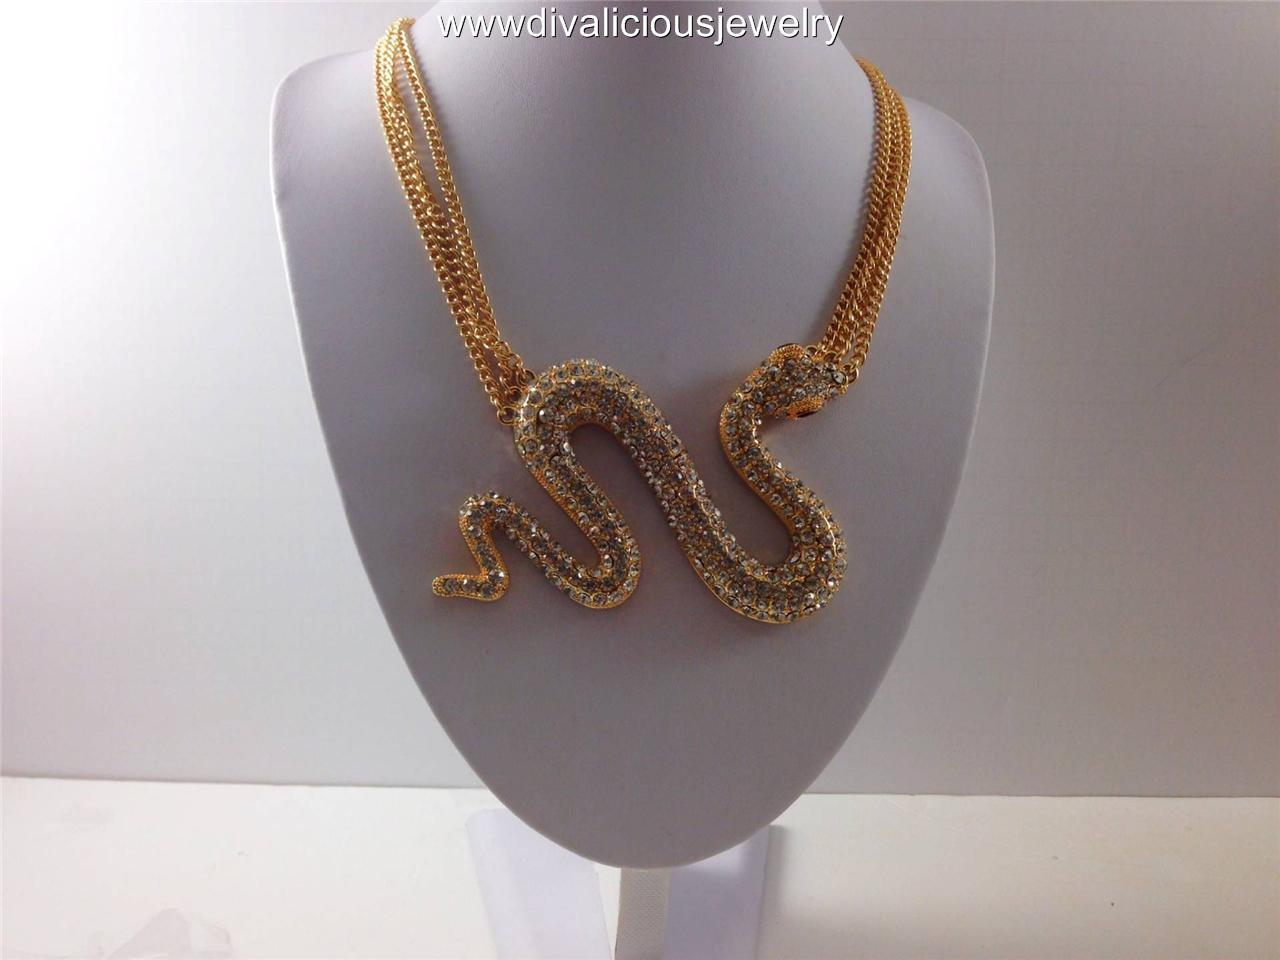 Crystal Ultra Snake Diva Bling Layered Chain Necklace - Gold or Silver